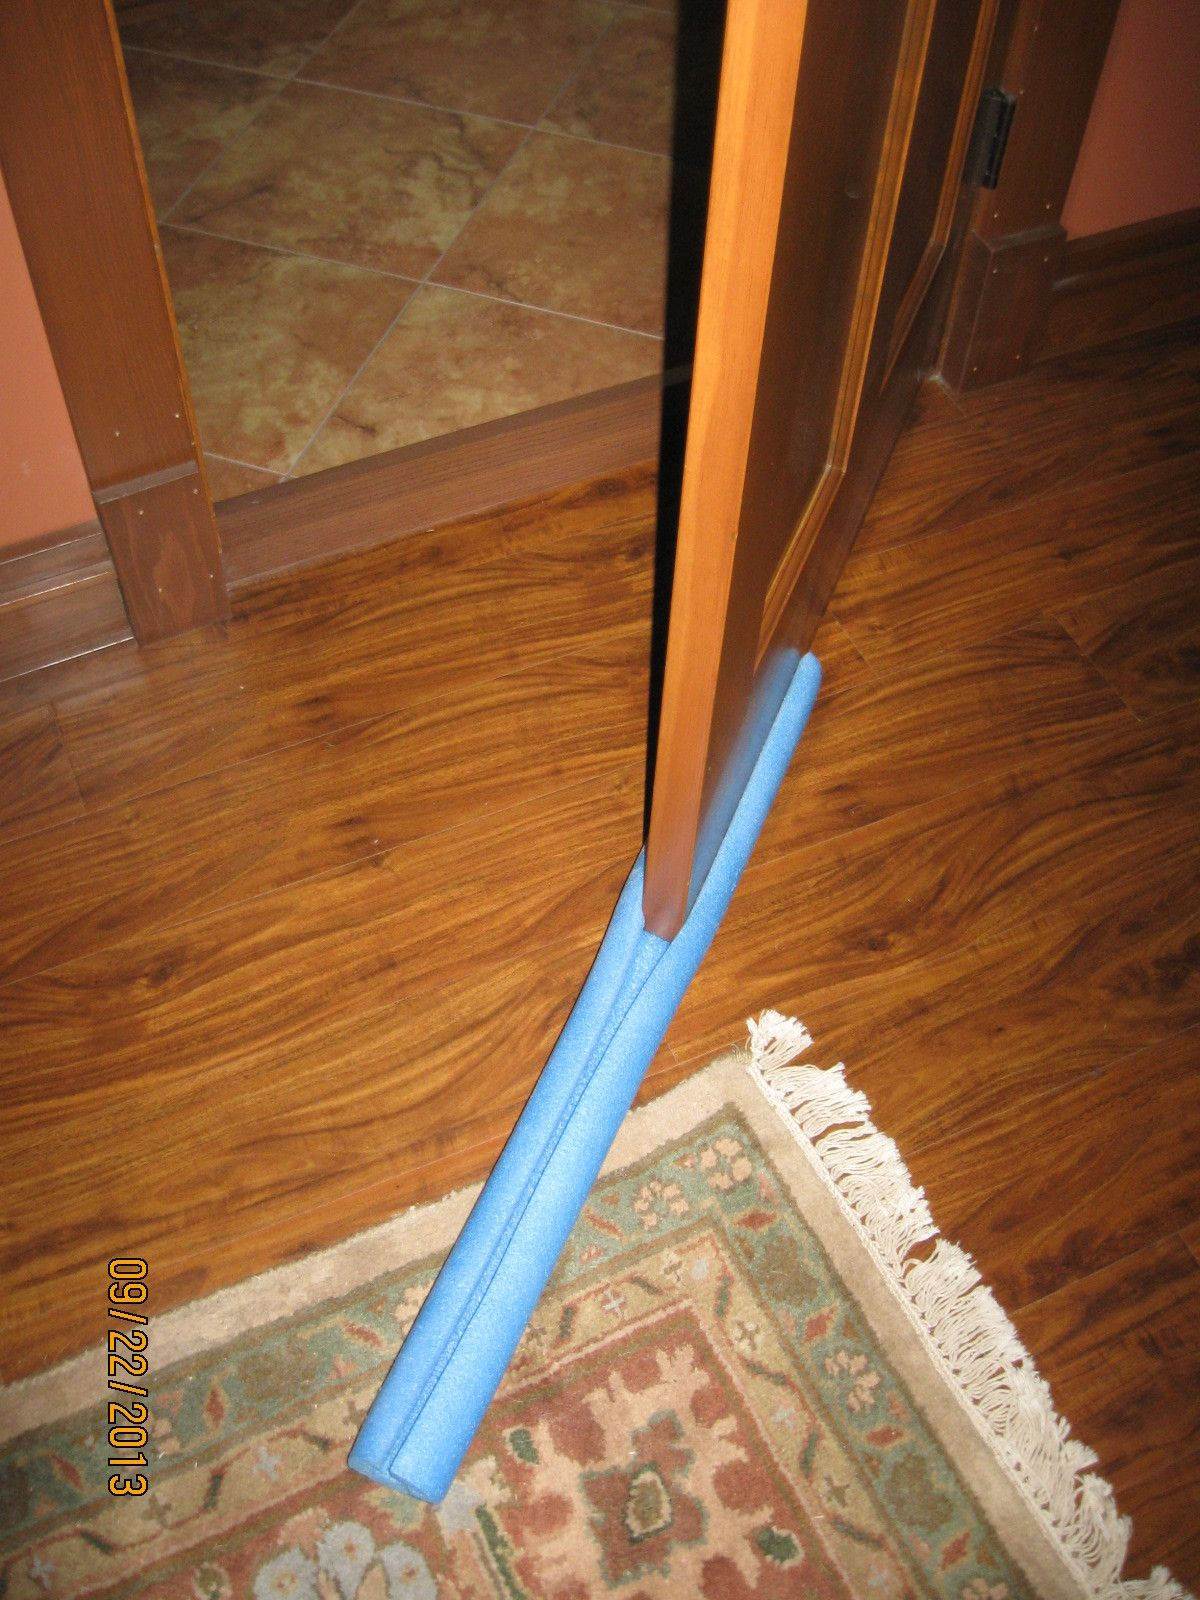 The Easiest Homemade Door Sweep Door Sweep Draft Stopper Diy